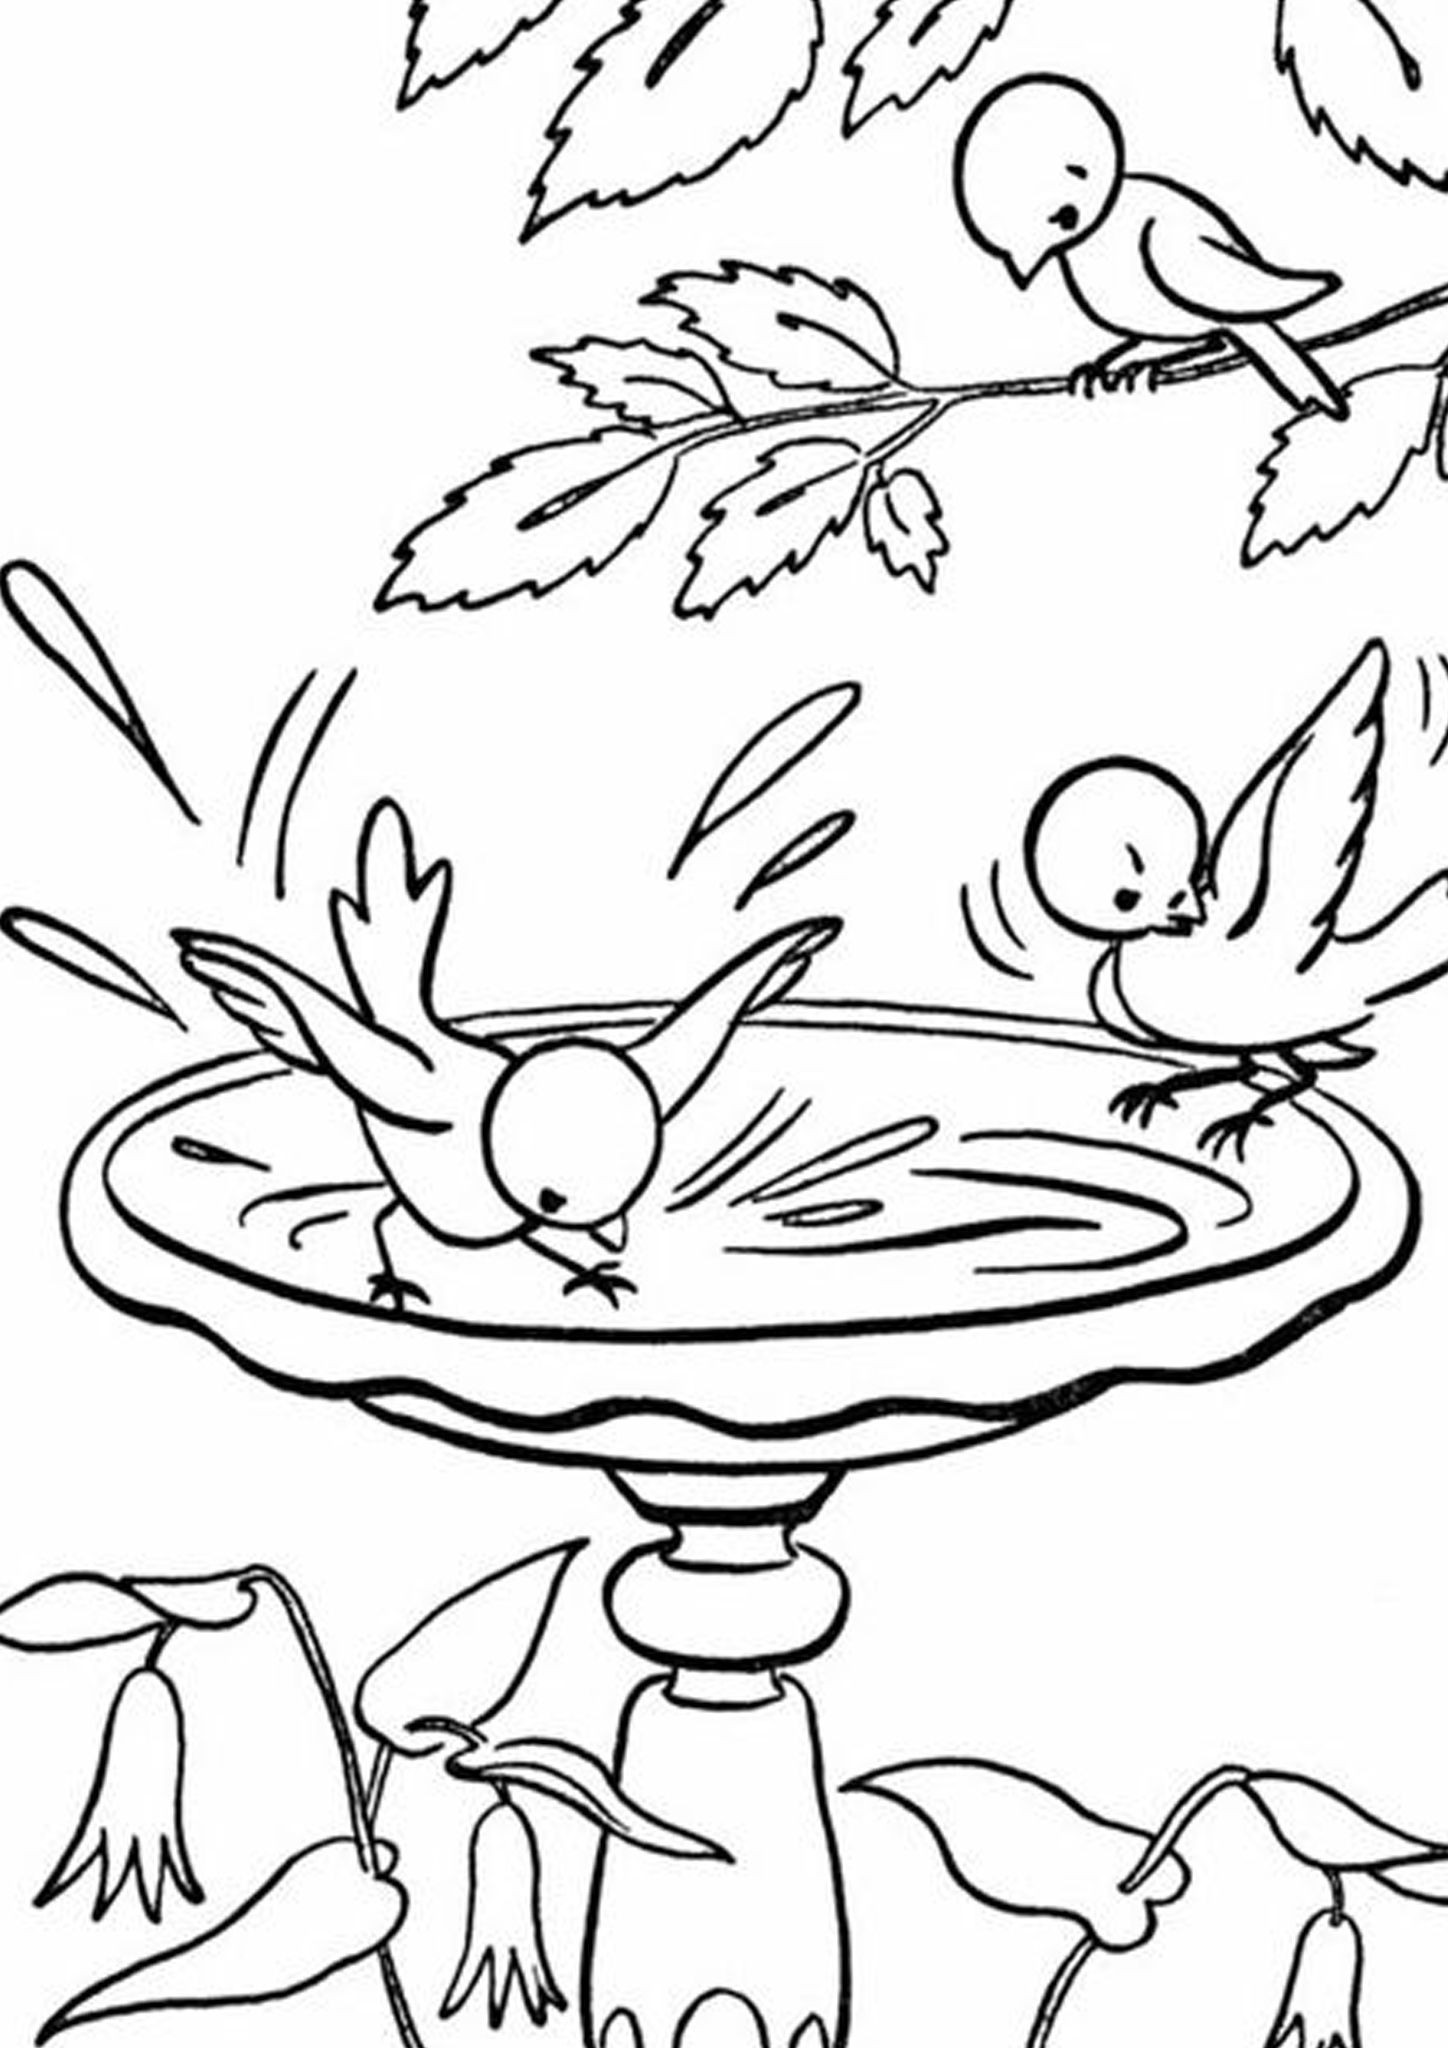 free bird coloring pages free easy to print bird coloring pages in 2020 bird coloring bird free pages